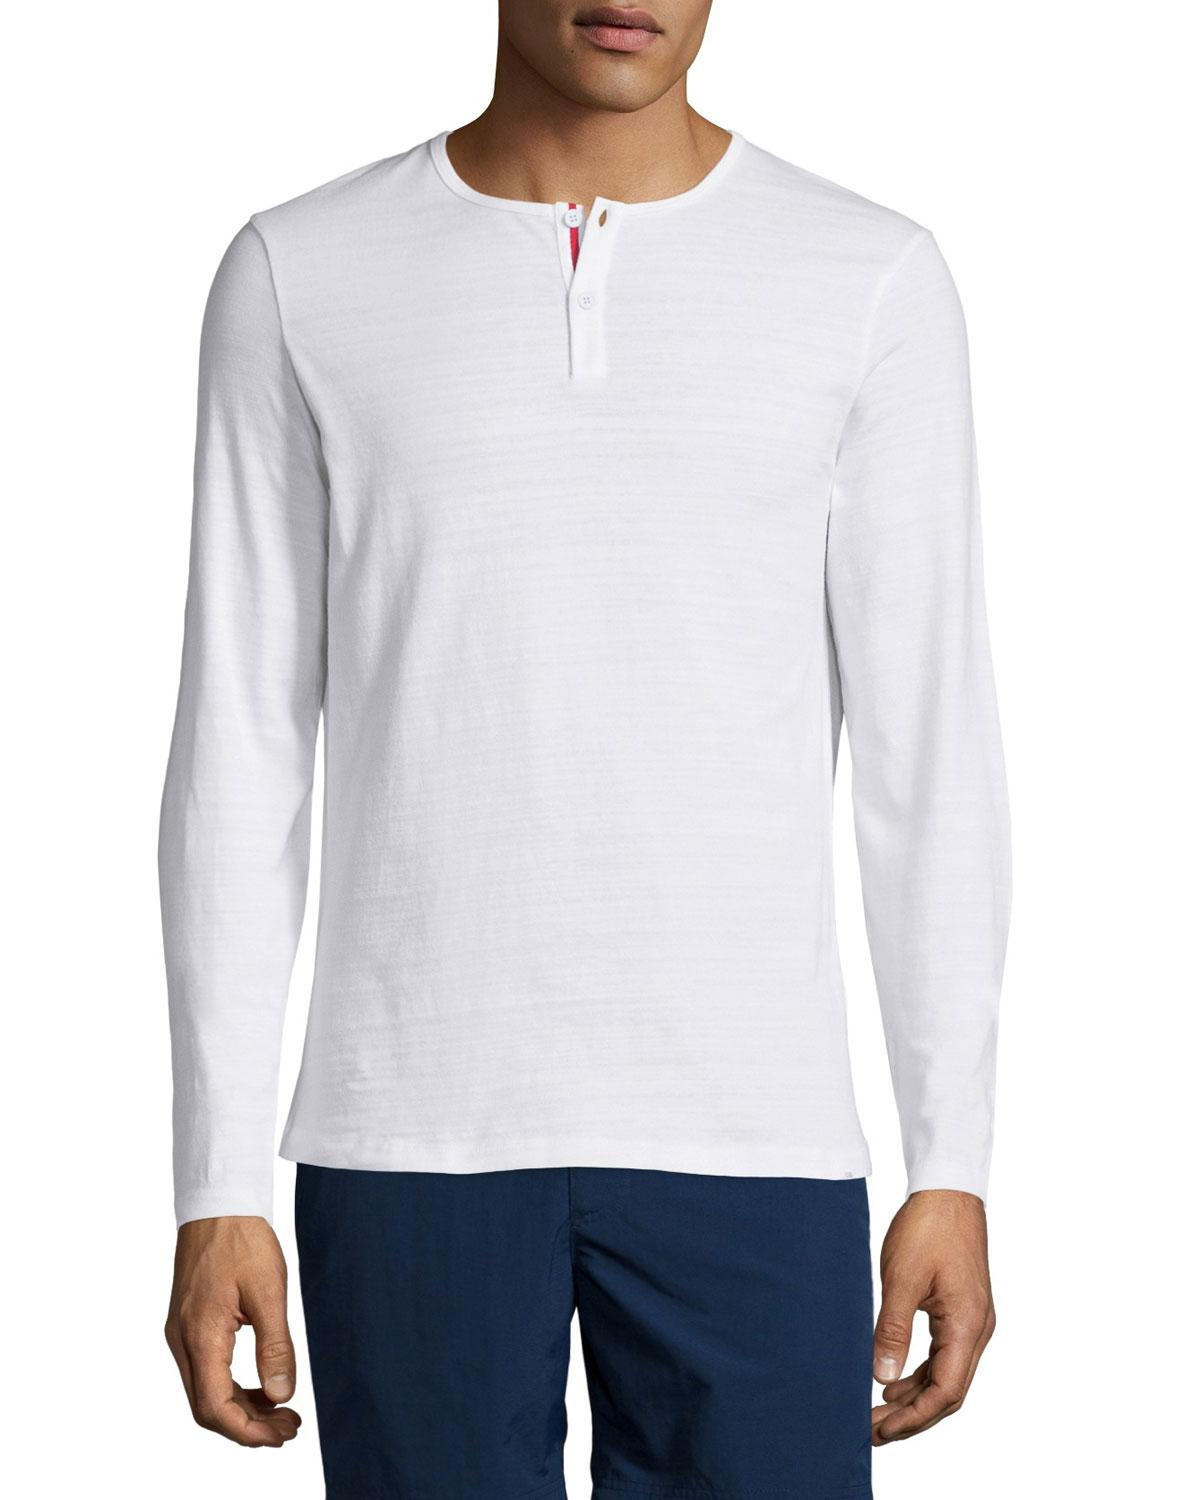 Free shipping and returns on Men's White Henley T-Shirts at travabjmsh.ga